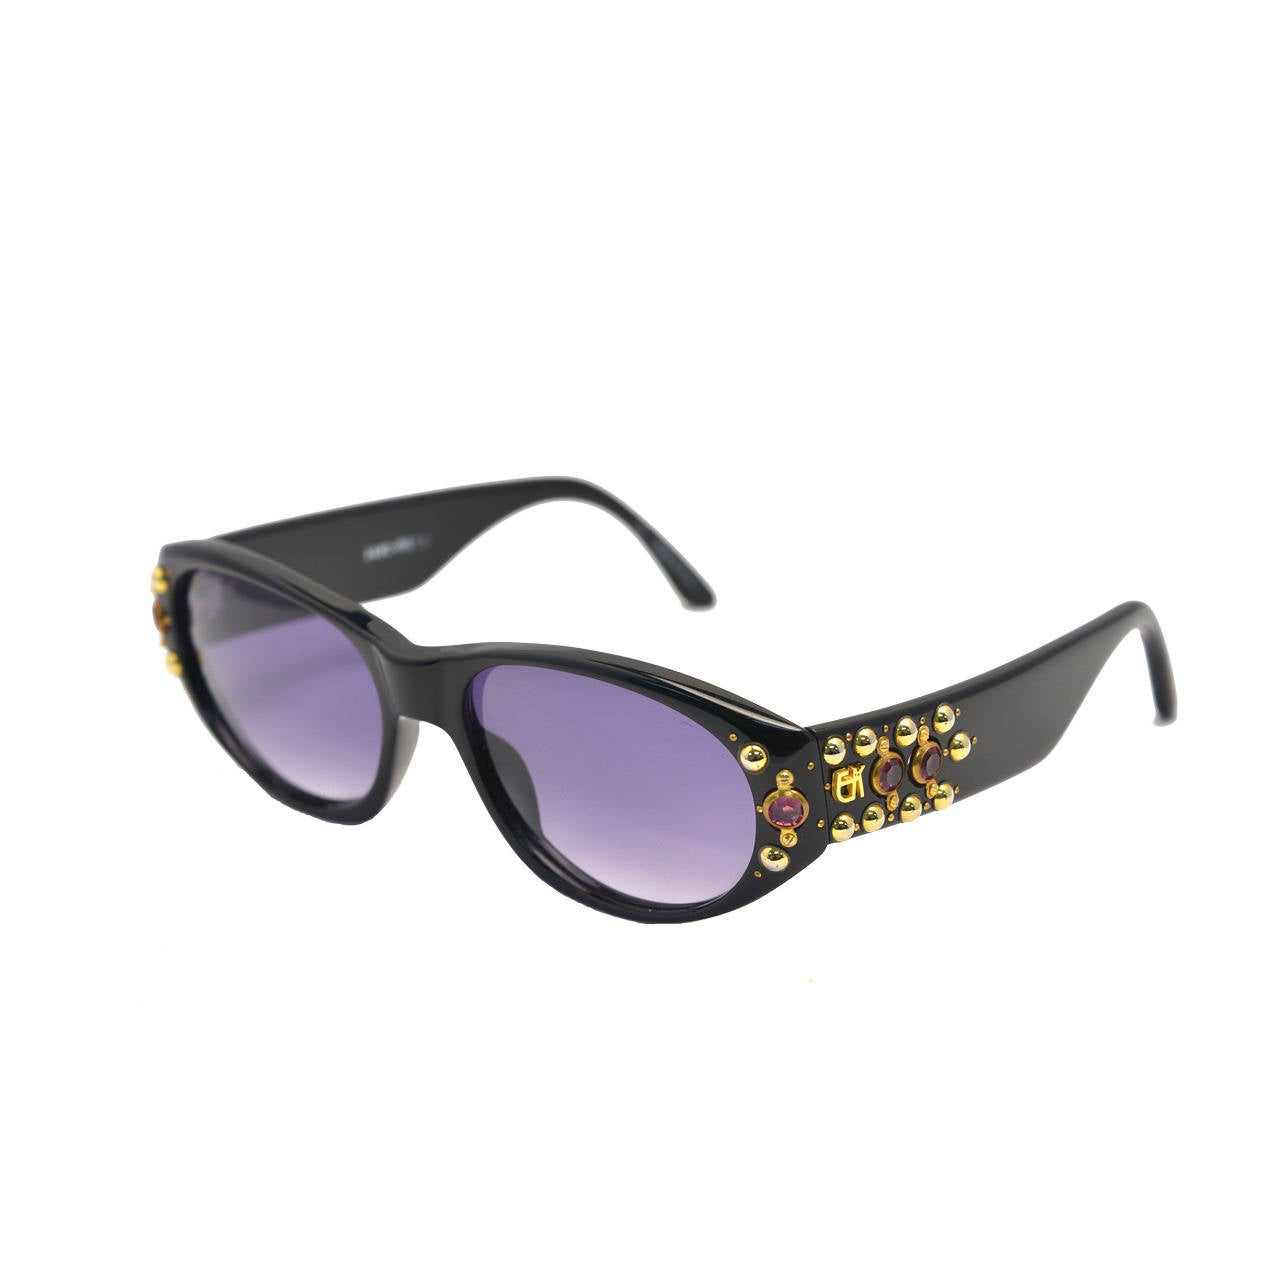 1980s Emanuelle Khanh Gold Studded Sunglasses with Pink Stones